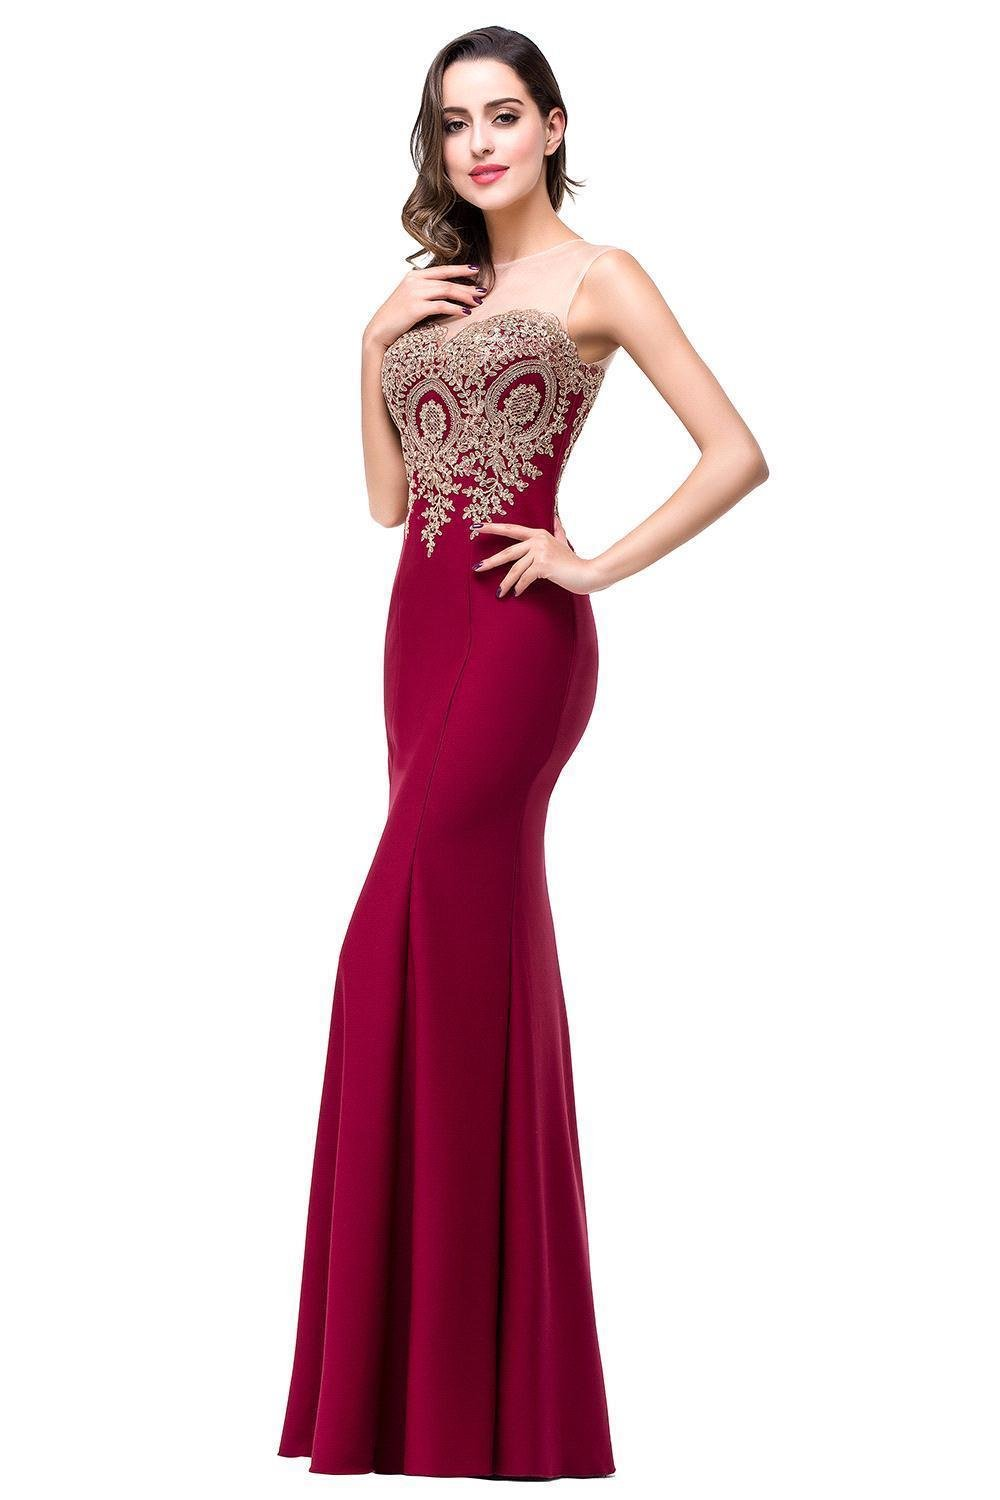 Babyonlinedress Women's Mermaid Gold Lace Embroidery Prom Dress Evening Gown,Burgundy,US 6